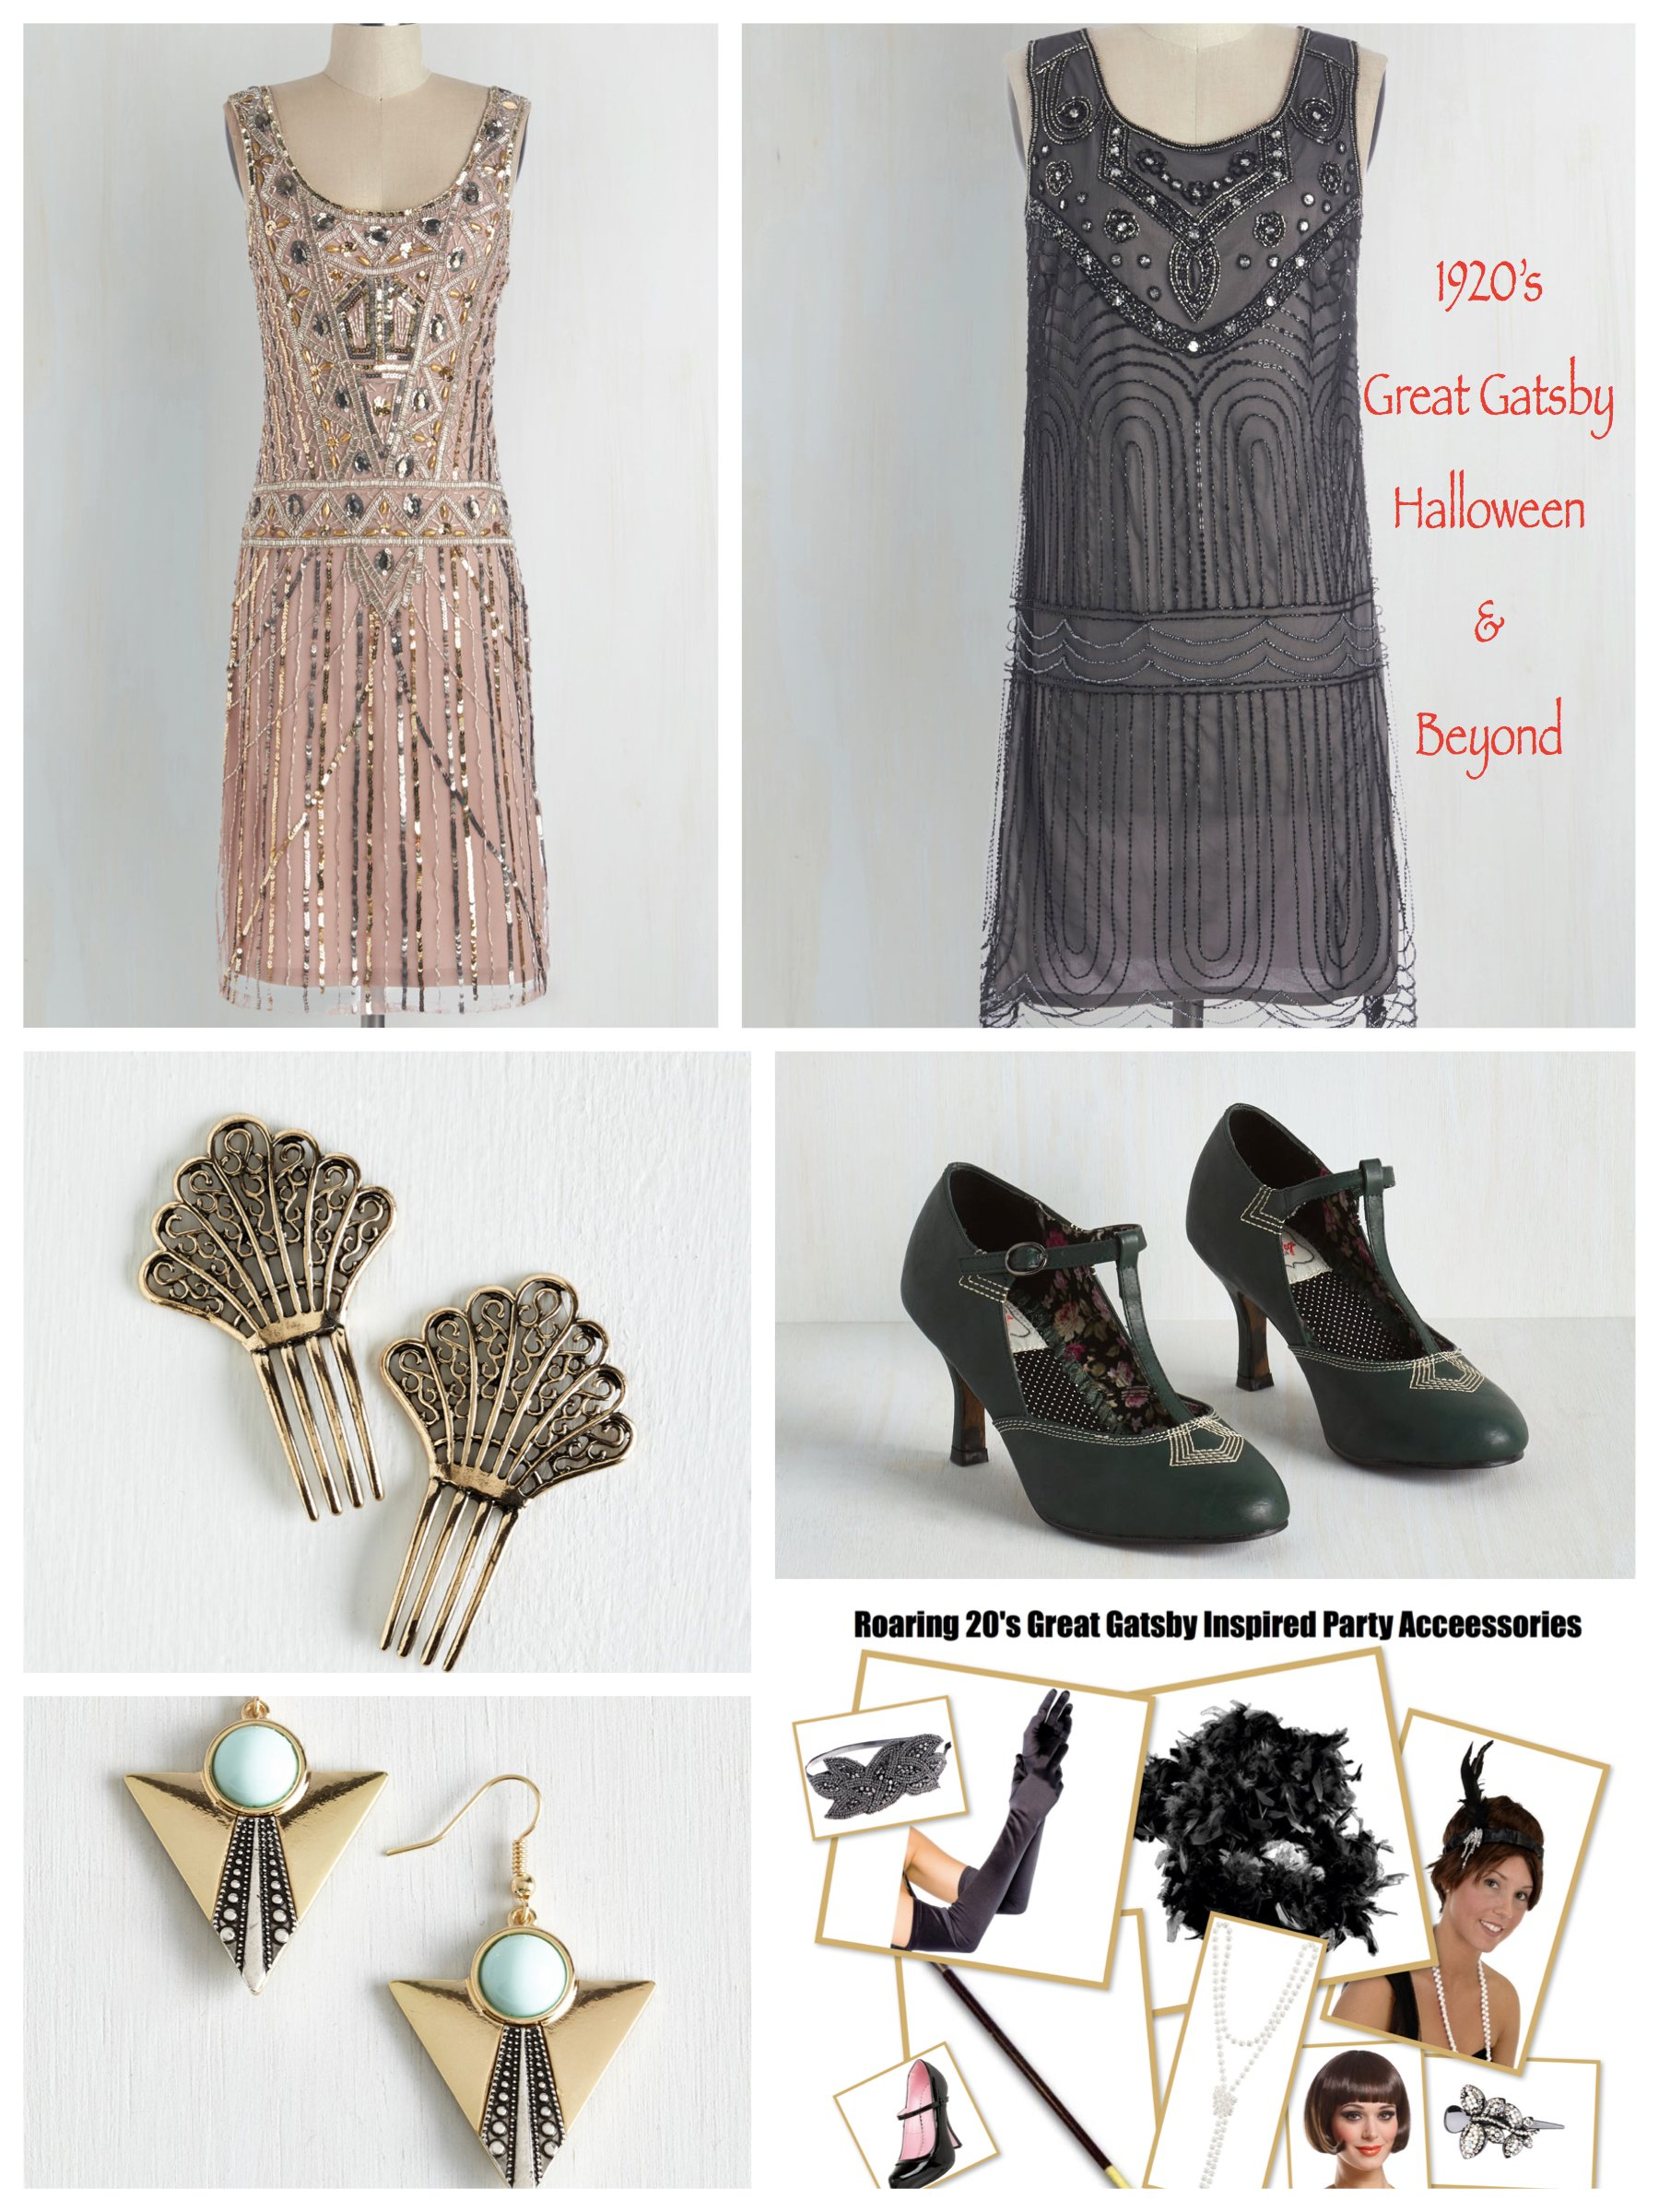 Roaring 20's Great Gatsby Inspired Dresses & Party Accessories,Halloween Costume Trend